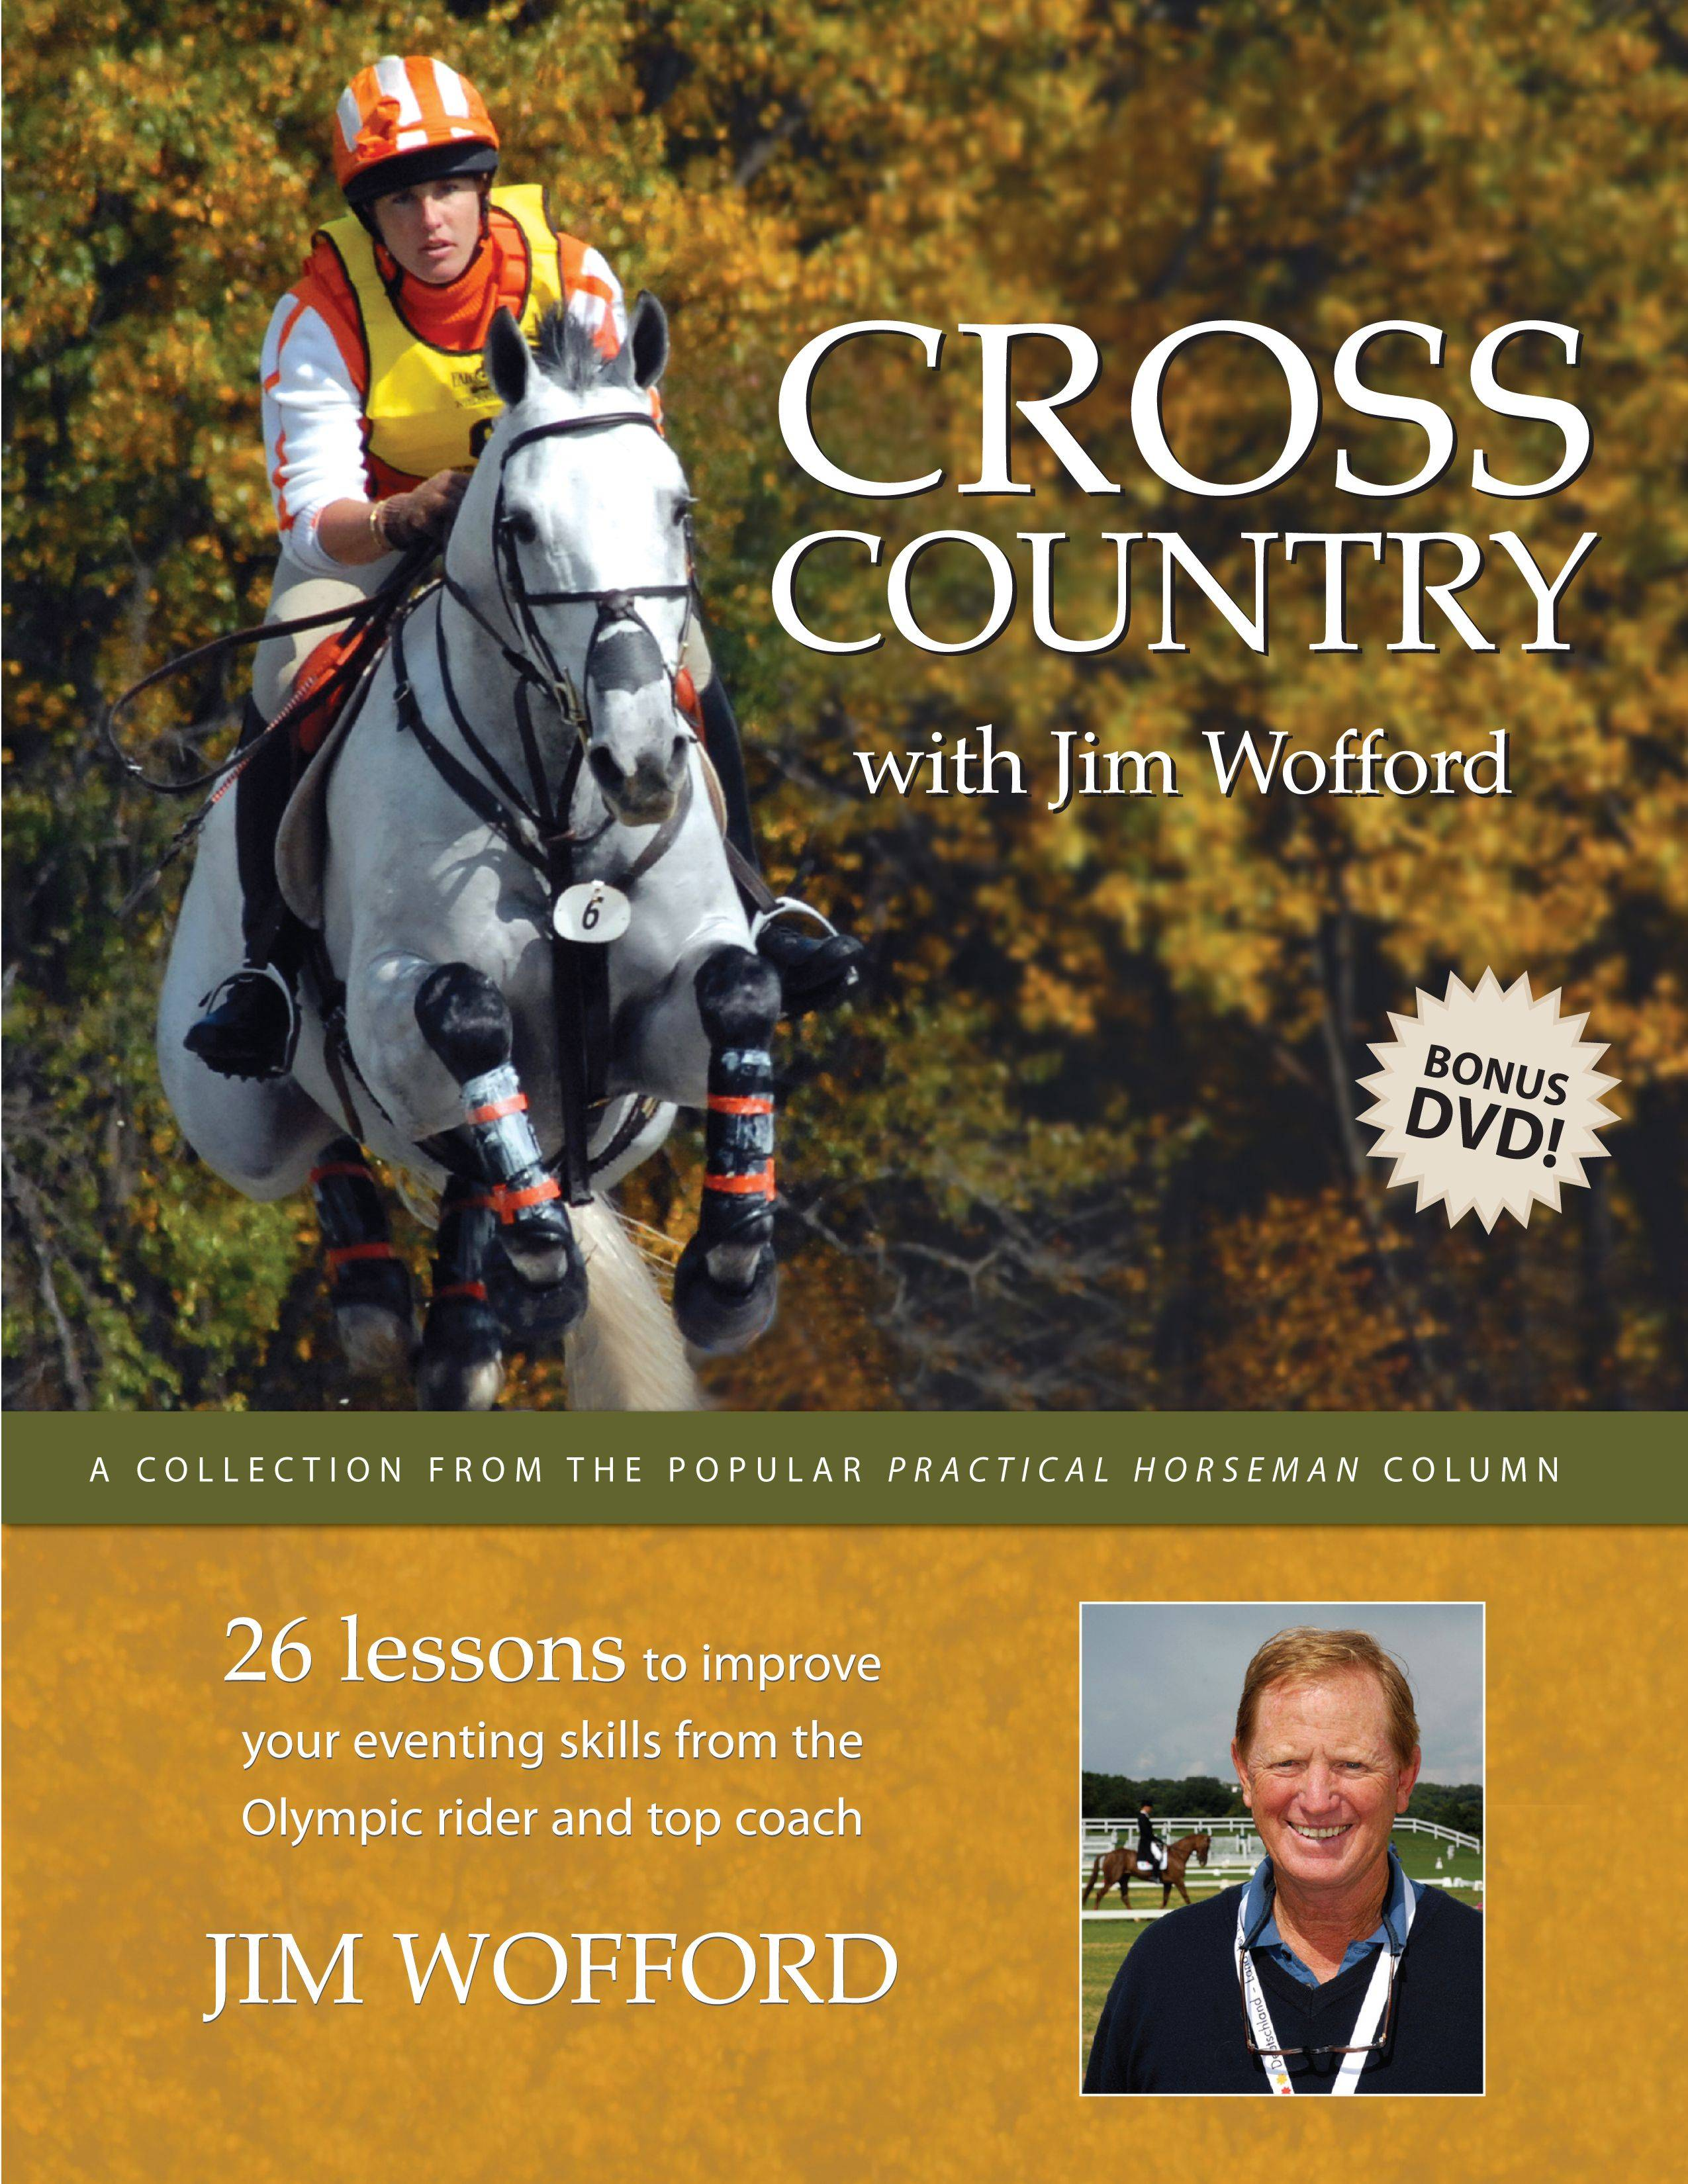 Crosscountry with Jim Wofford